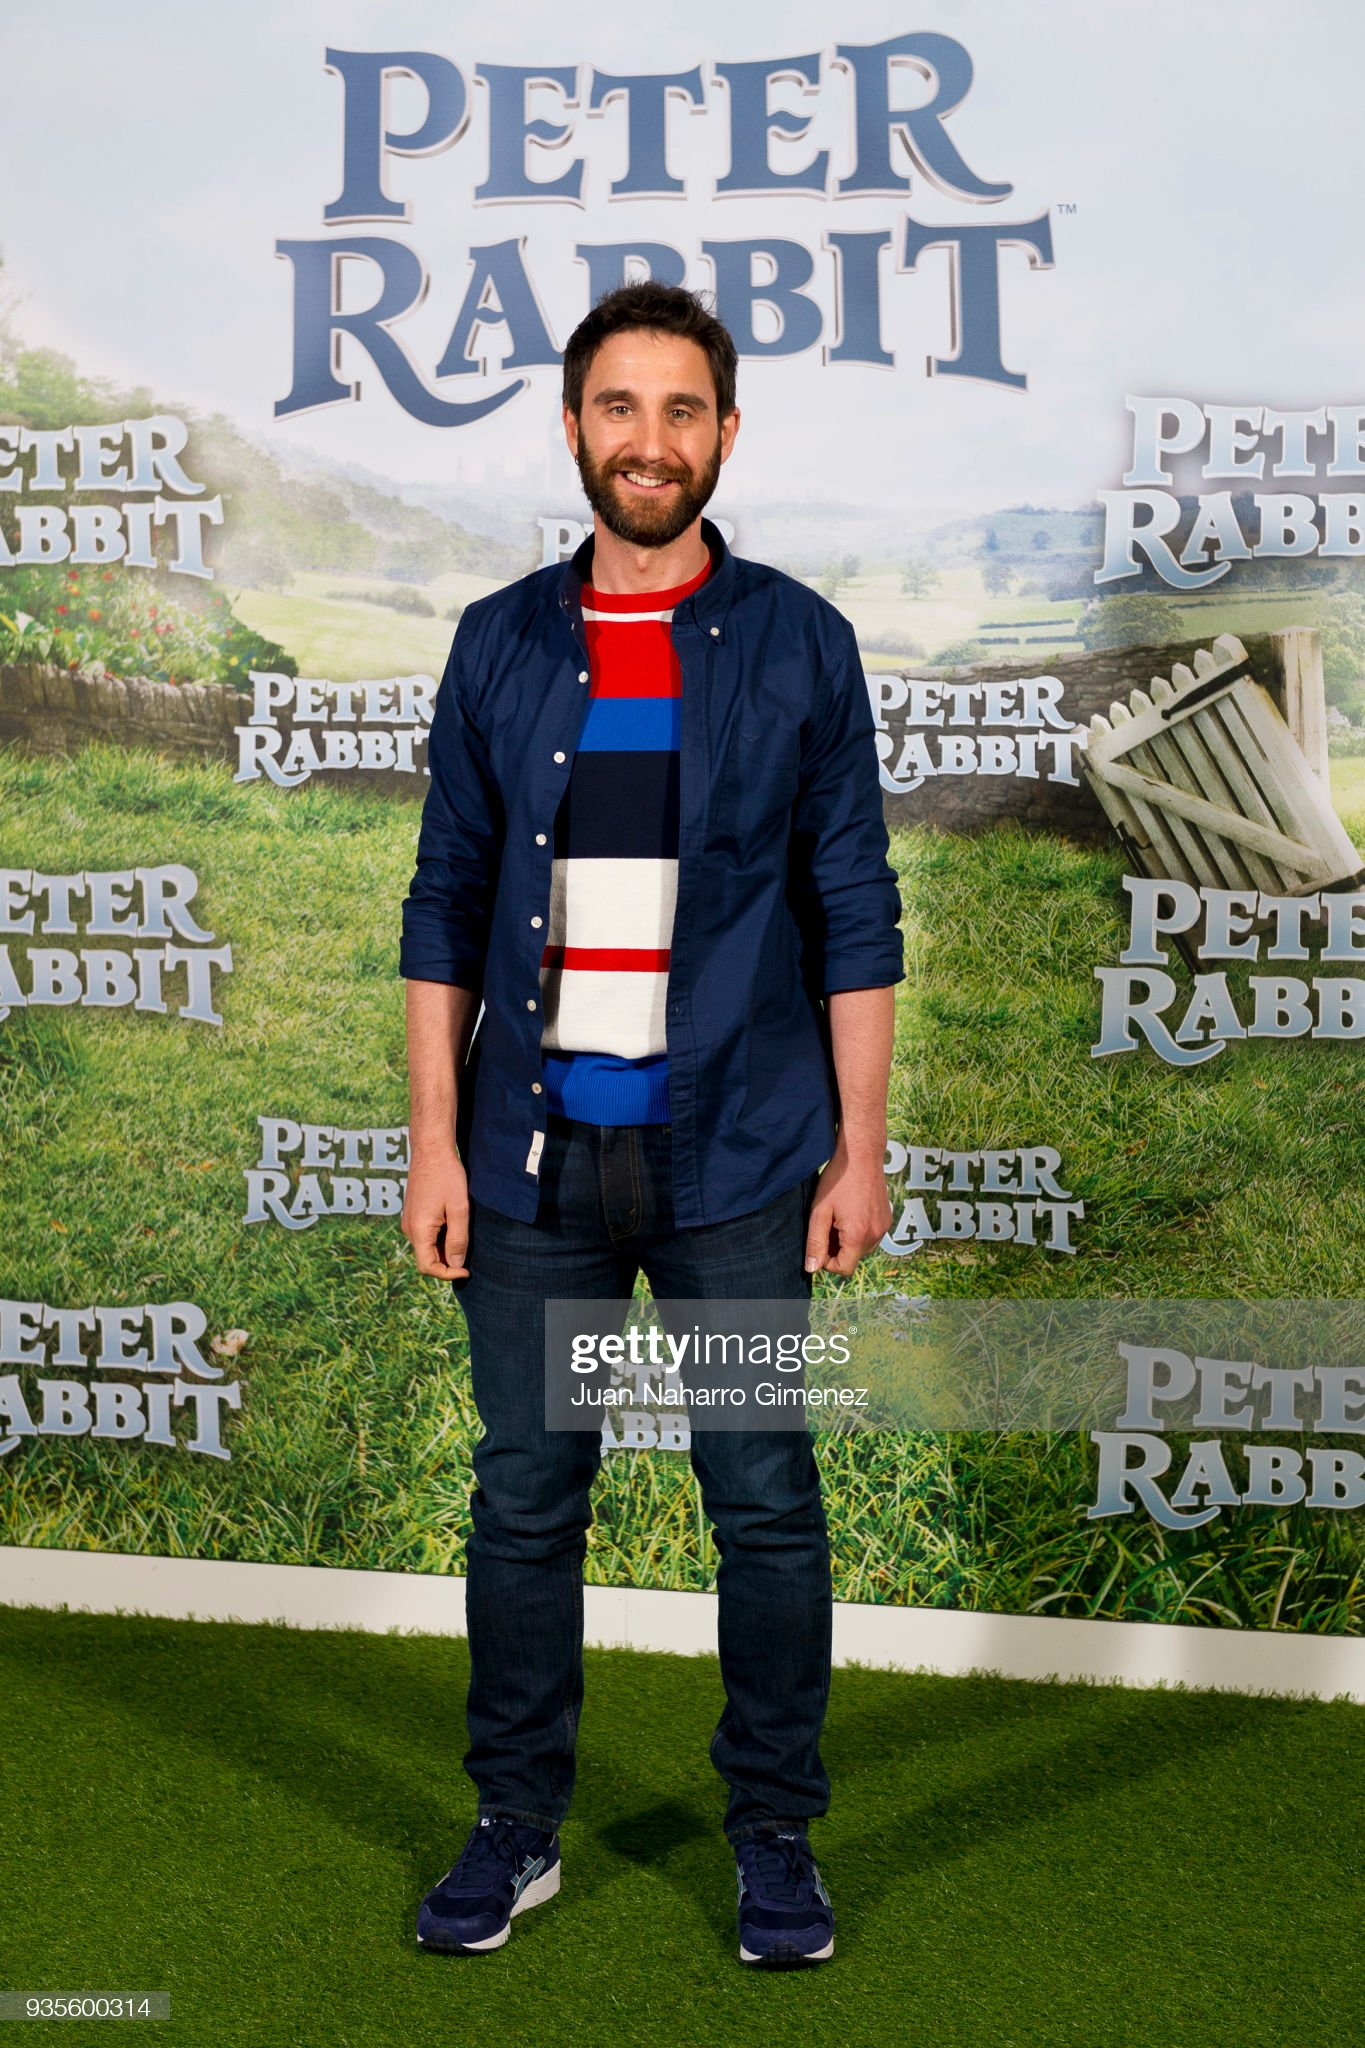 ¿Cuánto mide Dani Rovira? Dani-rovira-attends-peter-rabbit-photocall-on-march-21-2018-in-madrid-picture-id935600314?s=2048x2048